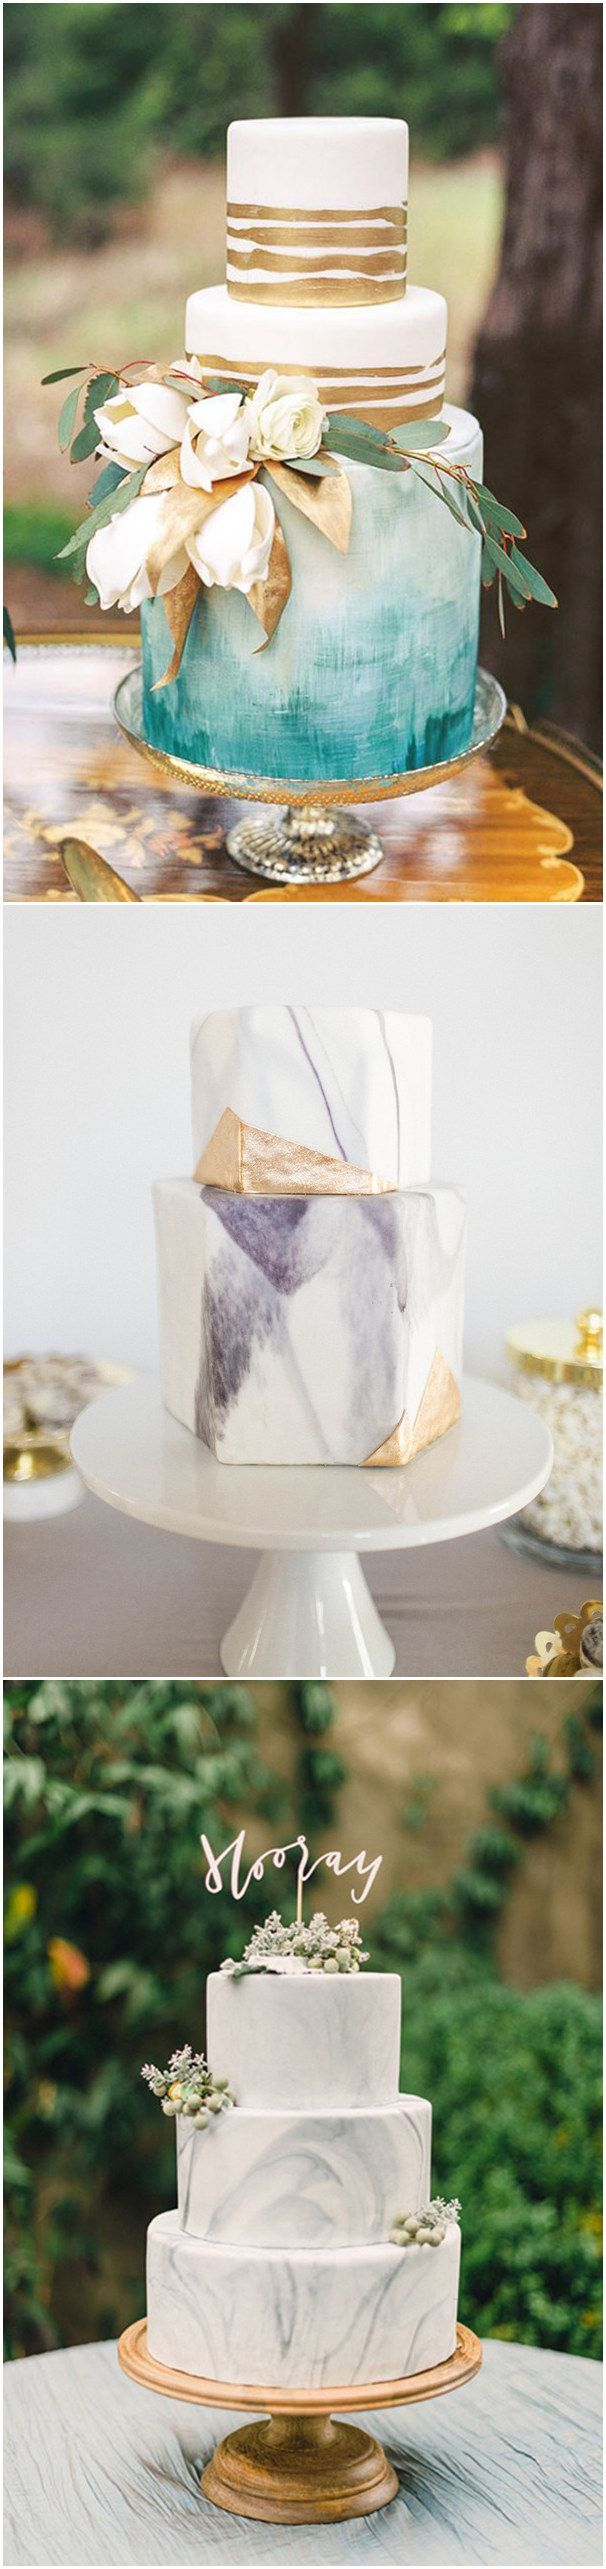 modern marble wedding cakes for 2017 Cake decorating ideas